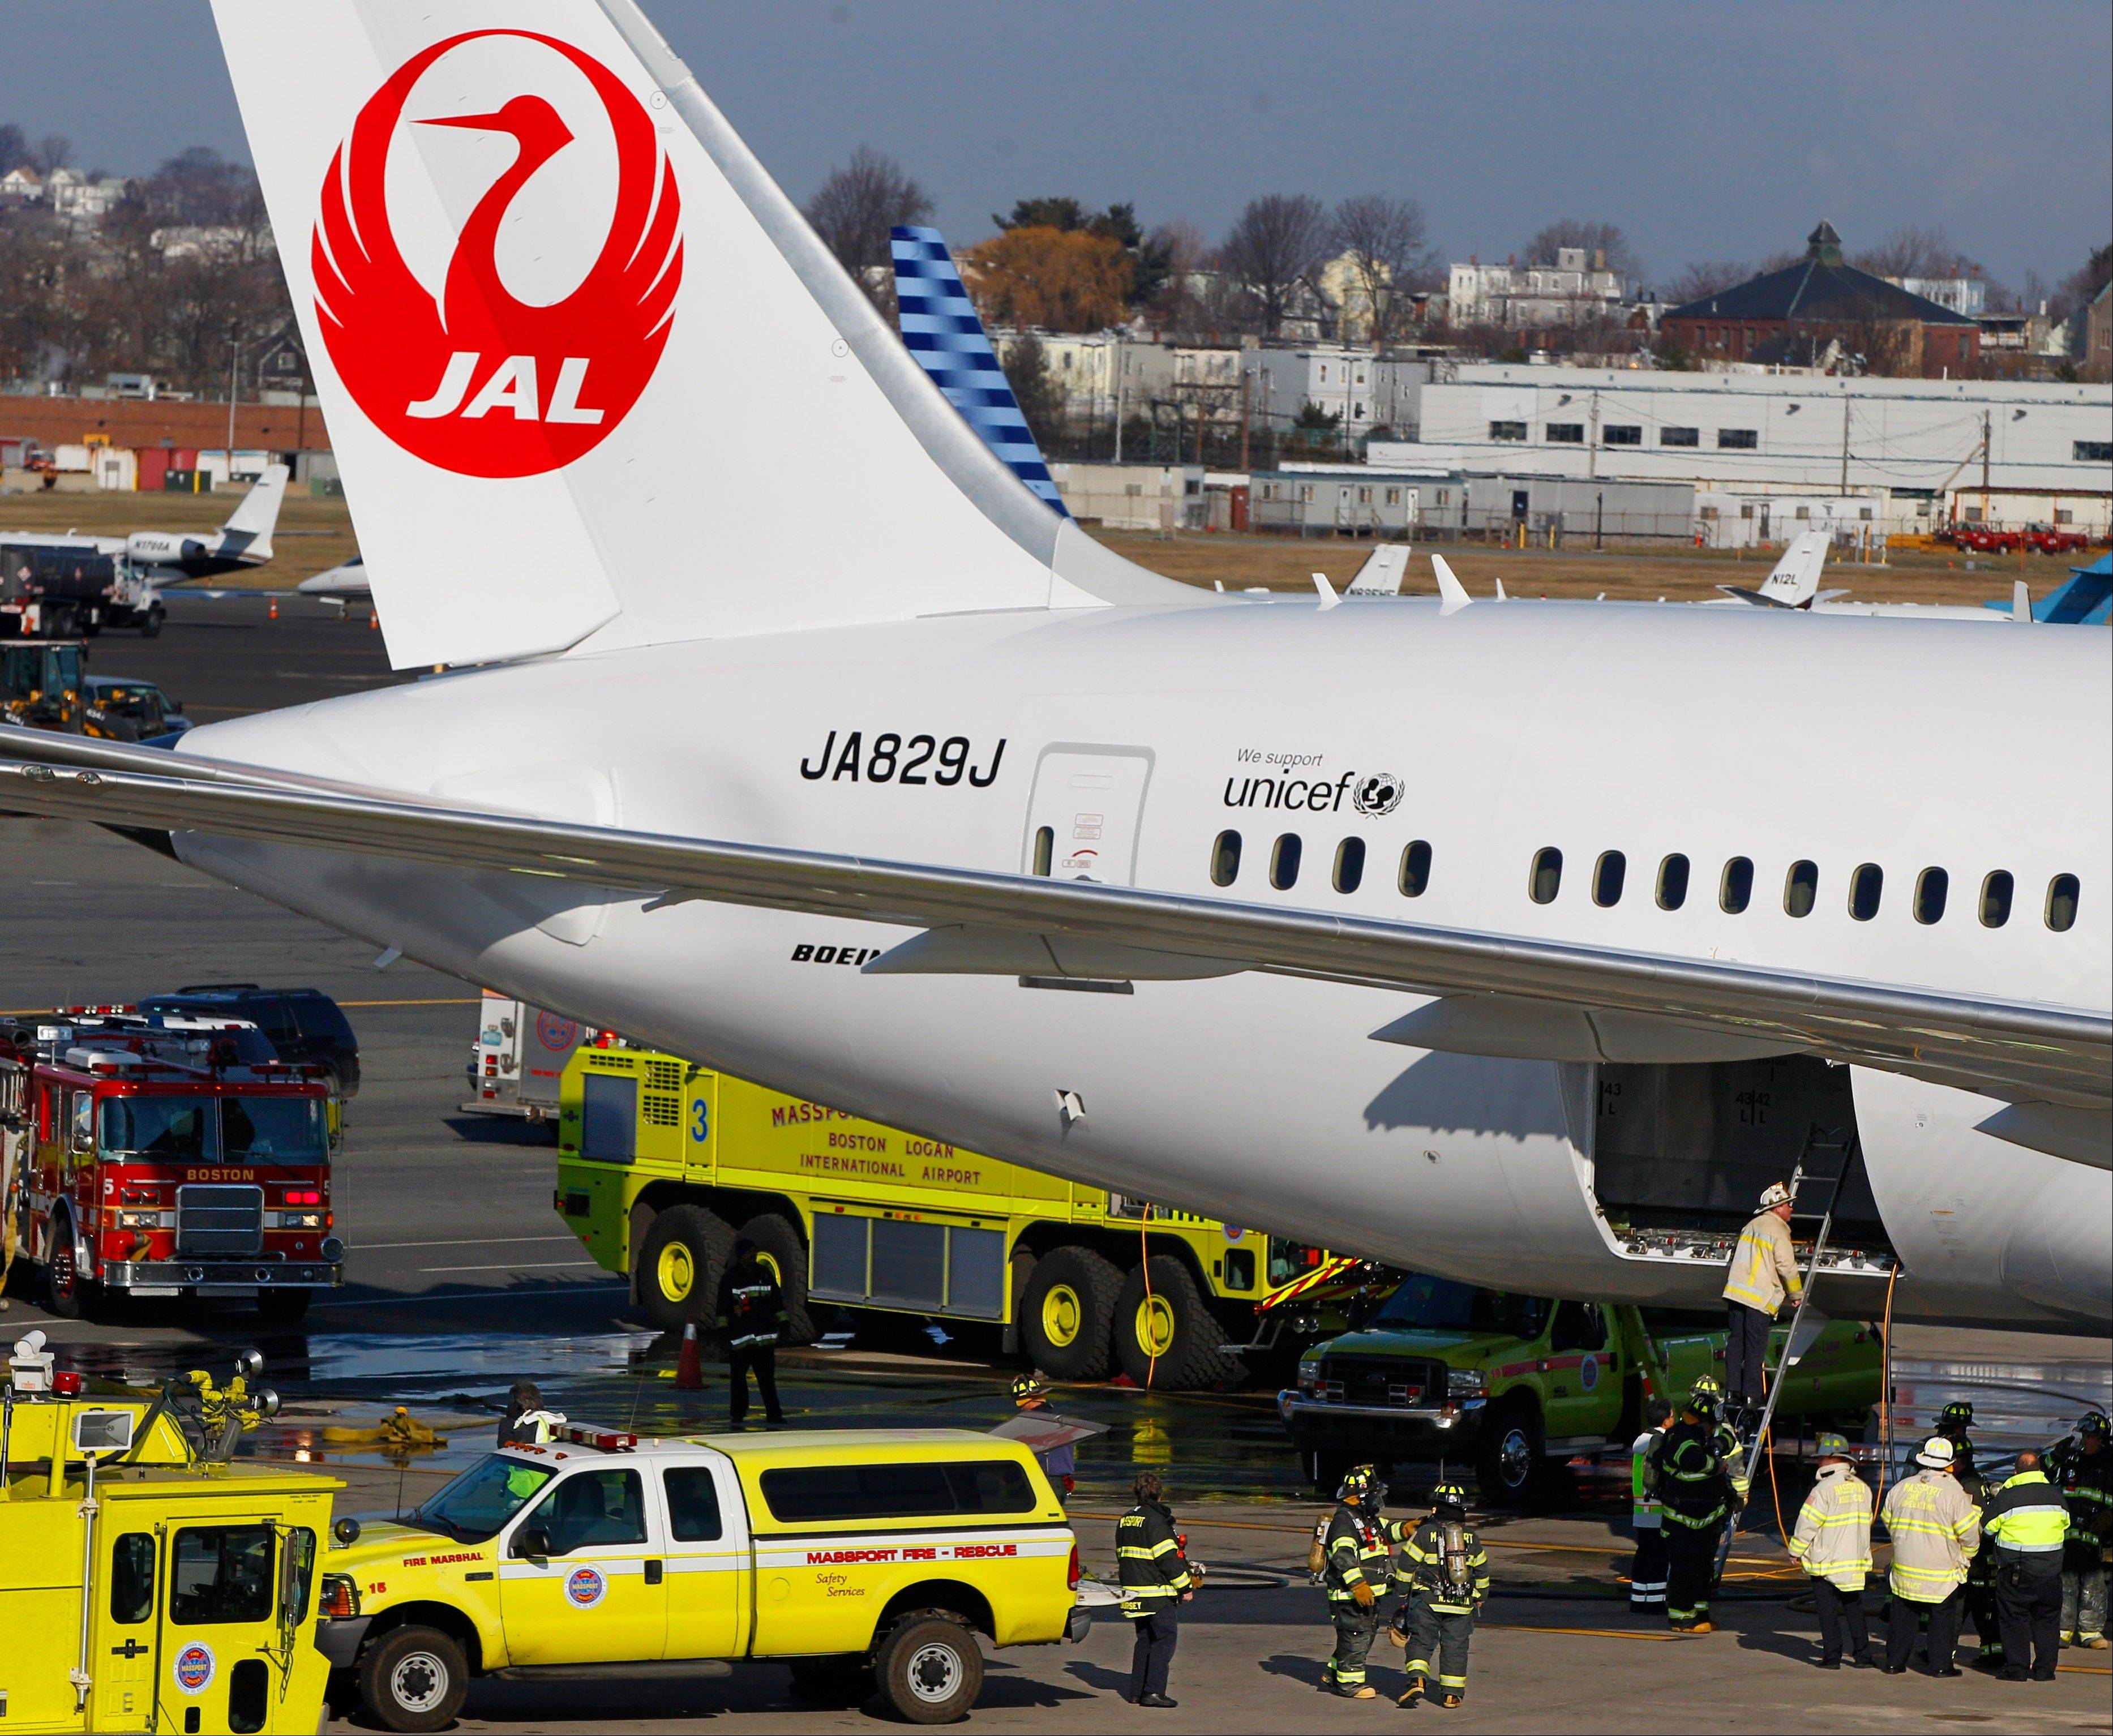 FILE - In this Jan. 7, 2013, file photo, a Japan Airlines Boeing 787 jet aircraft is surrounded by emergency vehicles while parked at a terminal E gate at Logan International Airport in Boston as a fire chief looks into the cargo hold. Federal regulators have approved a Boeing plan to redesign the fire-prone lithium-ion batteries, although extensive testing will be needed before the planes can fly passengers again. The Federal Aviation Administration said Tuesday, March 12, 2013, the plan includes a redesign of the internal battery components to minimize the possibility of short-circuiting, better insulation of the battery's eight cells and the addition of a new containment and venting system.